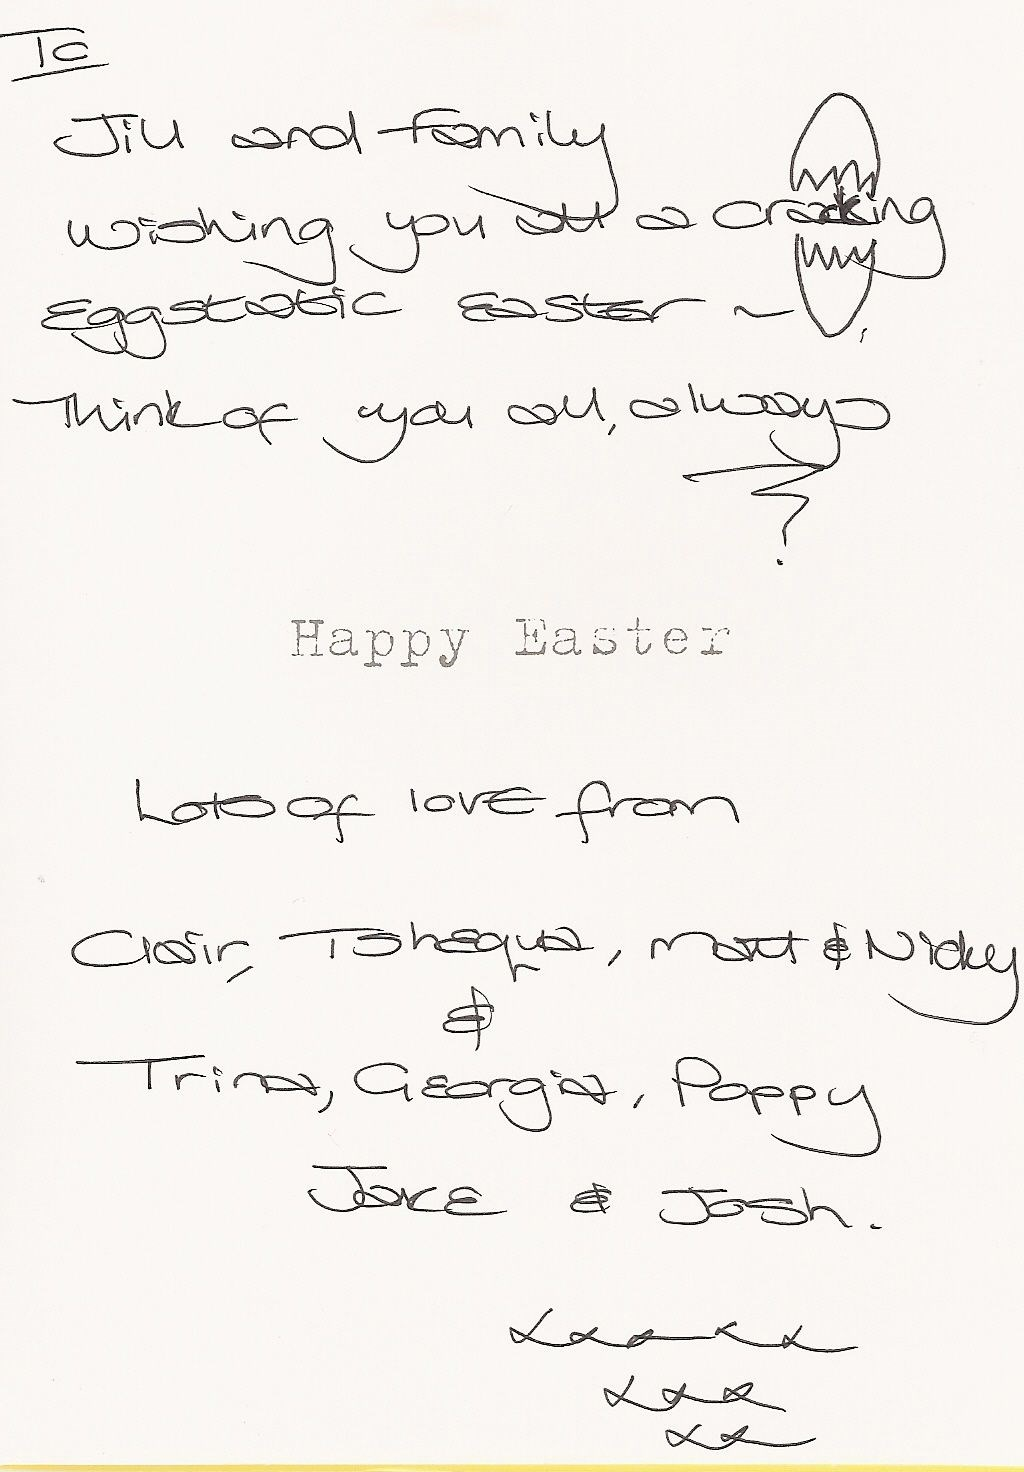 The message on our Easter card